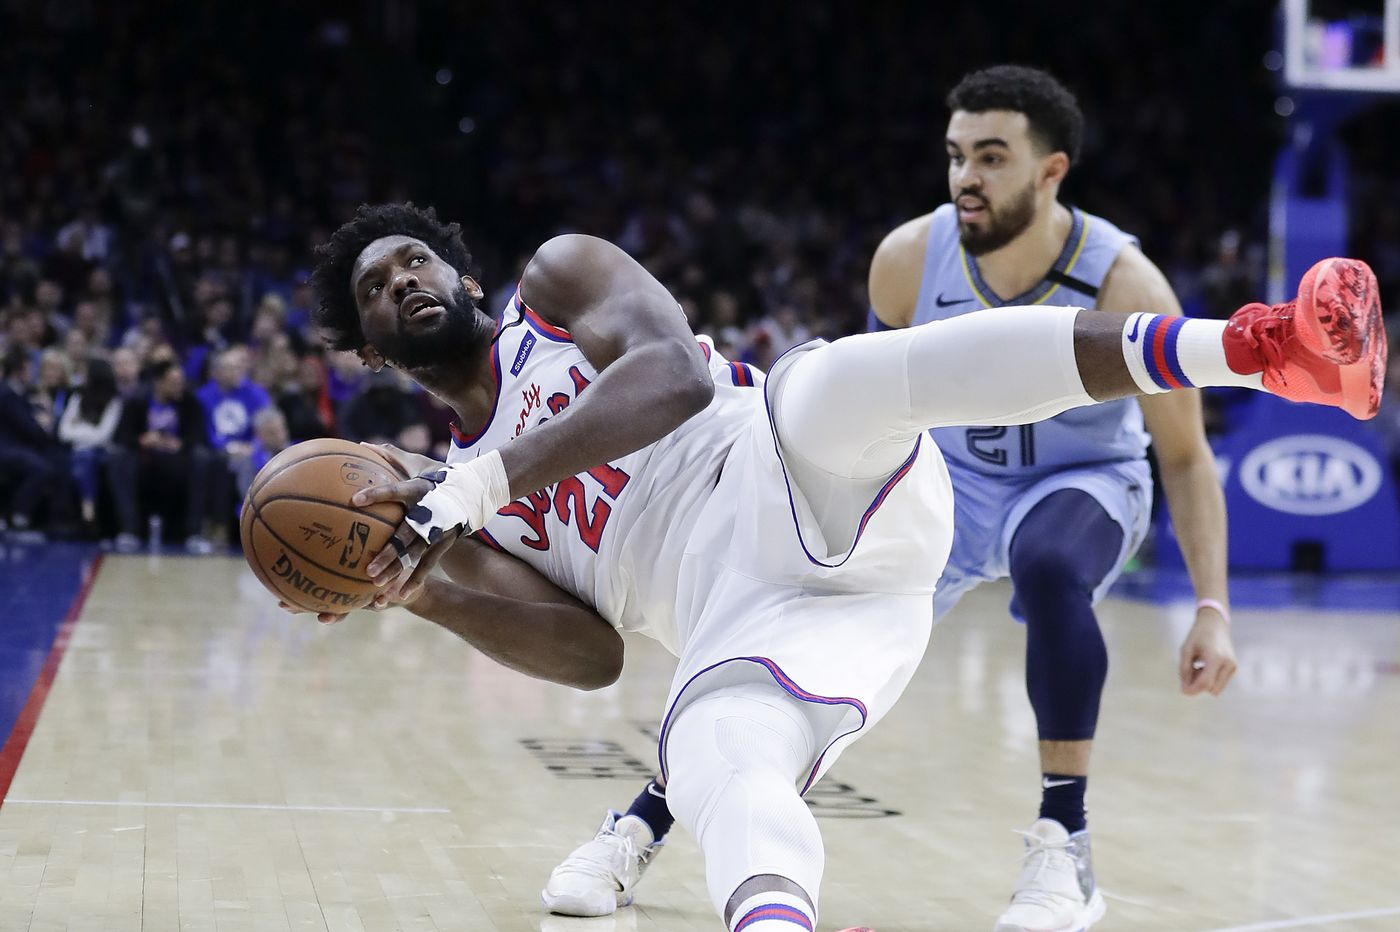 Brett Brown plans to ease Joel Embiid's and other 'heavyweight' players' minutes in scrimmages